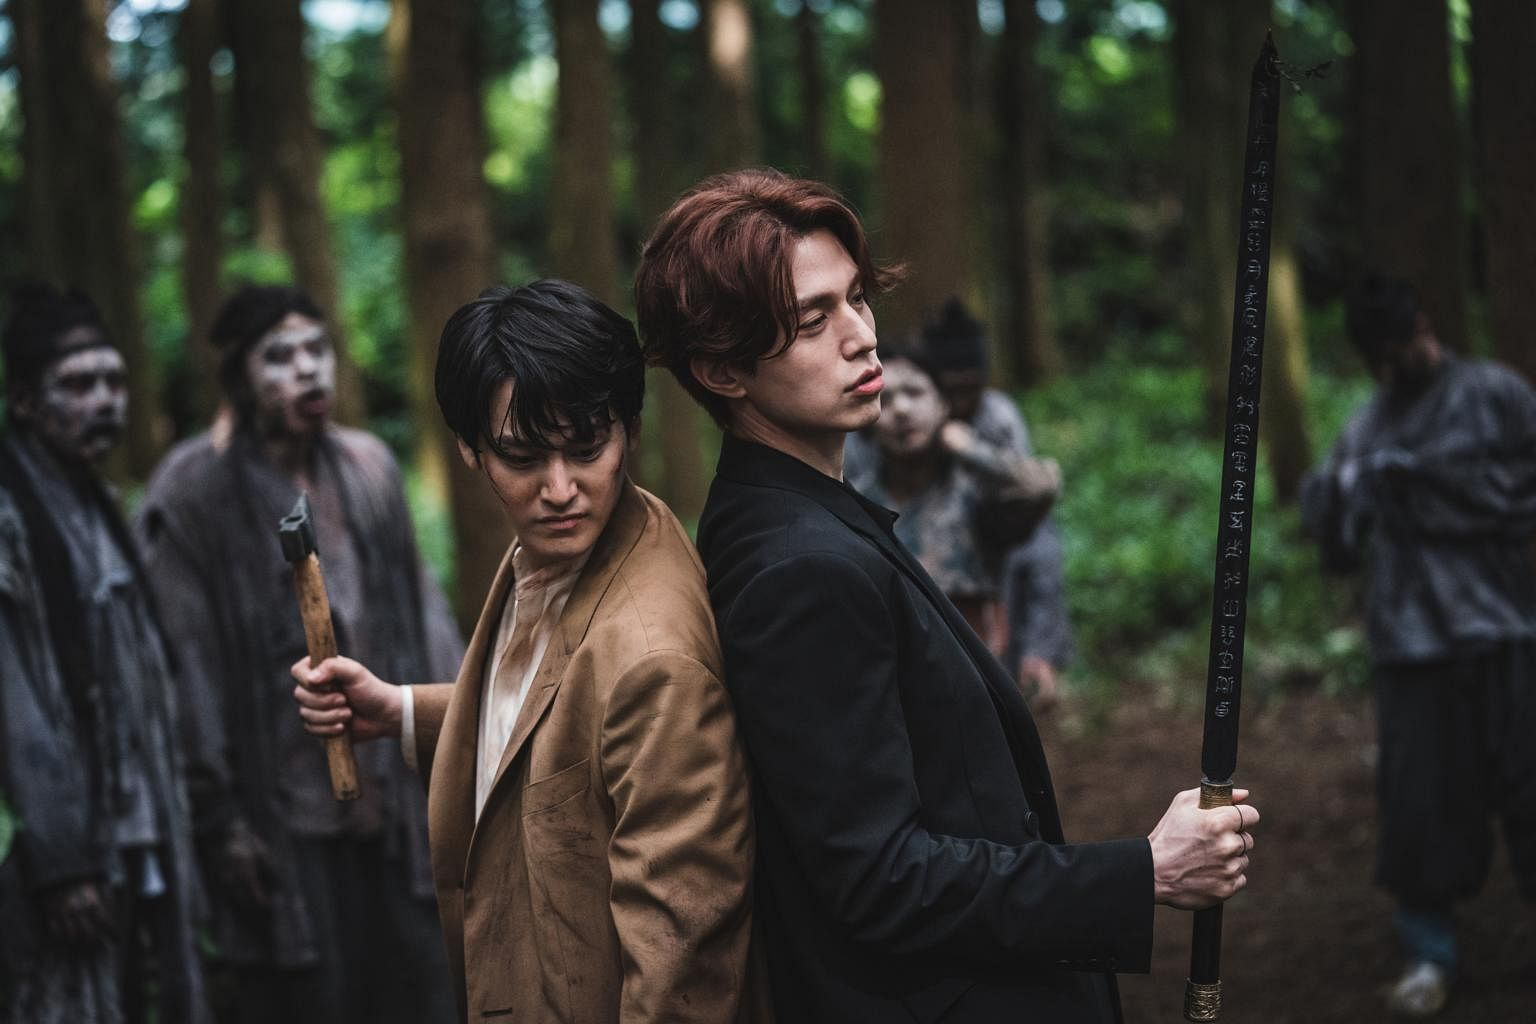 Tale Of The Nine Tailed: Lee Dong-wook returns to fantasy after Goblin,  Entertainment News & Top Stories - The Straits Times